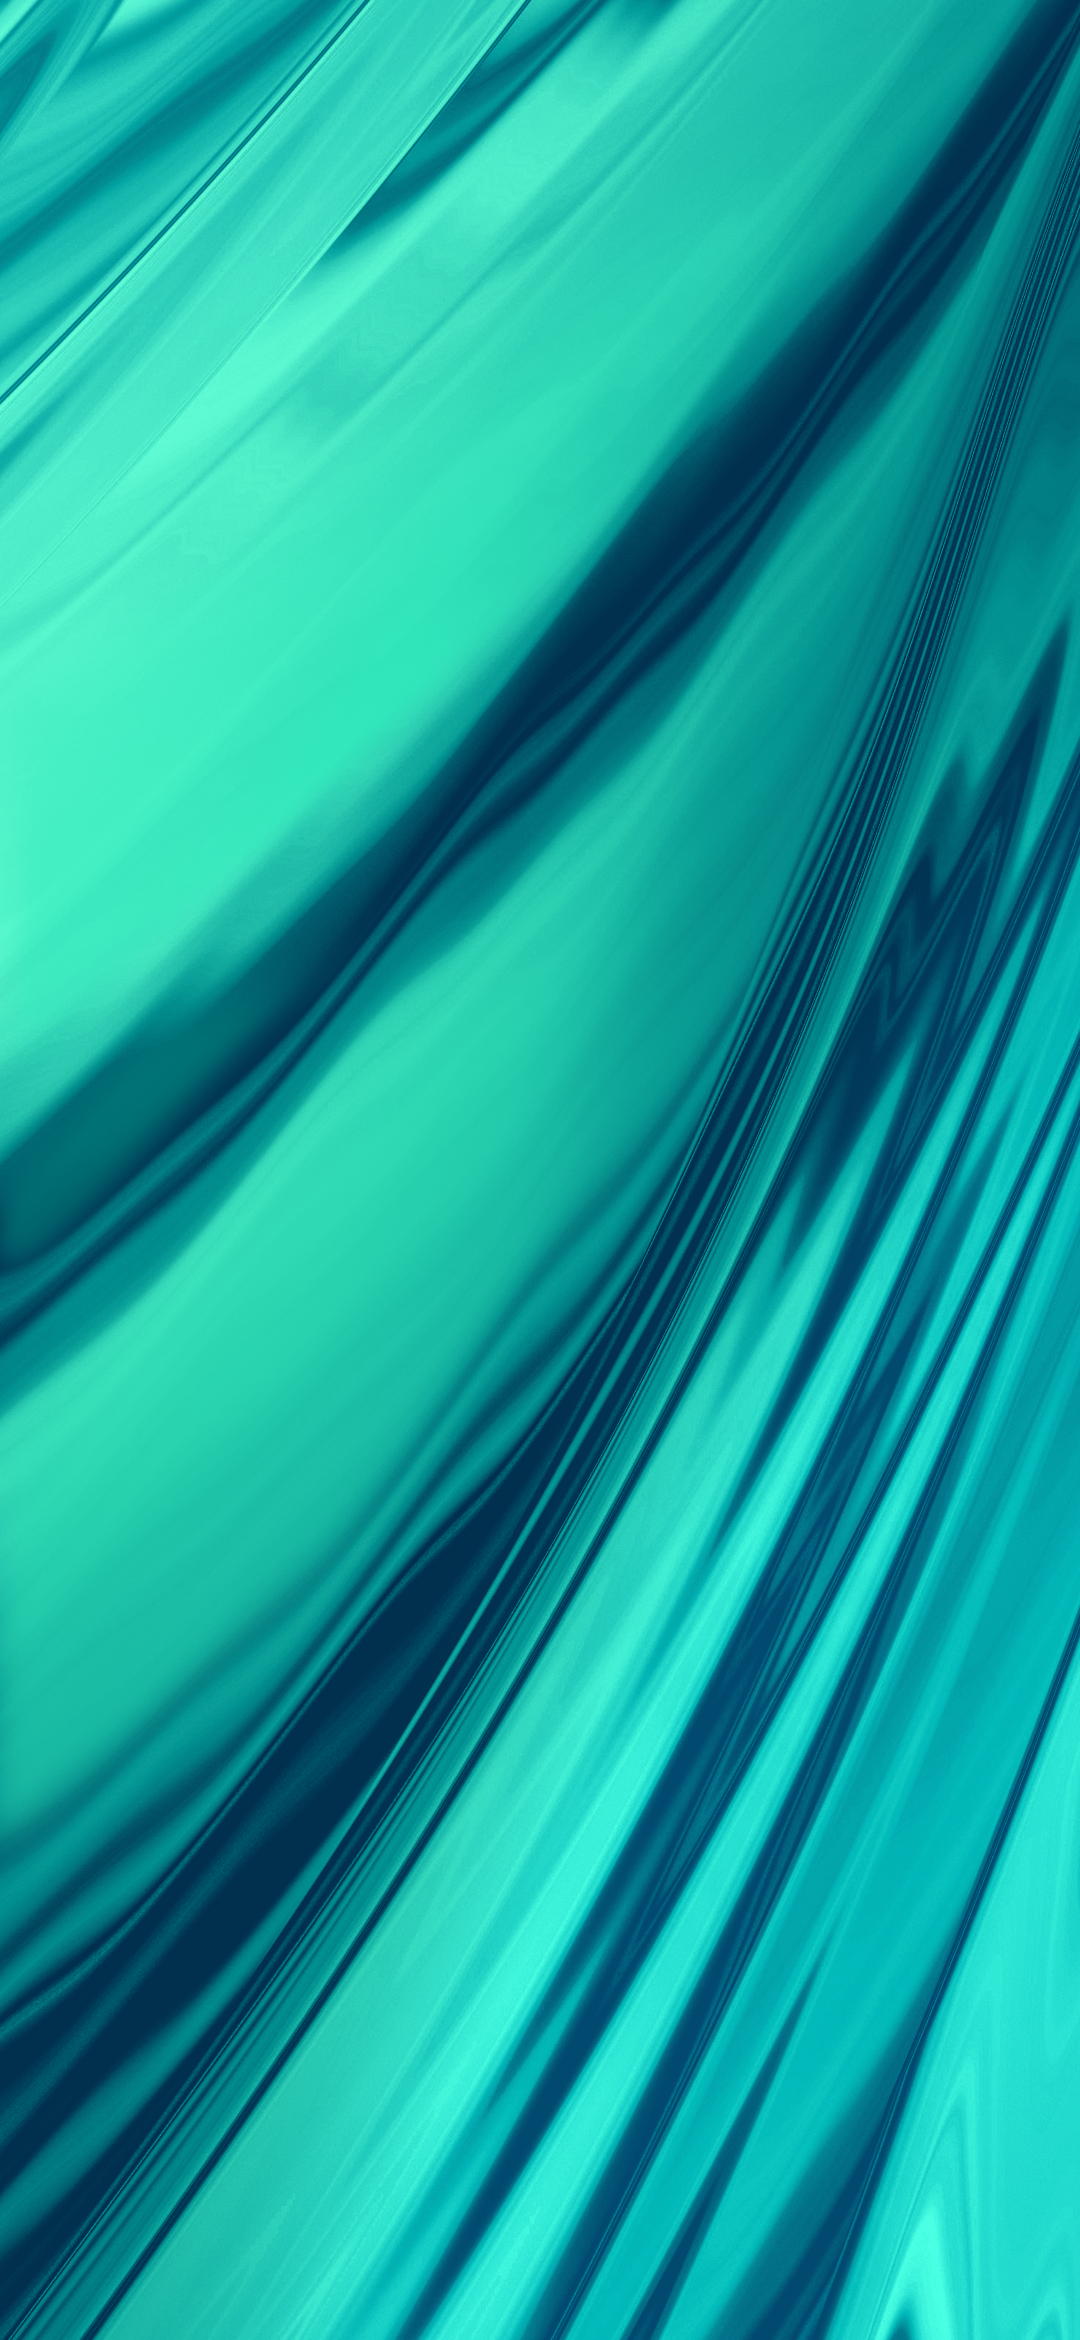 Abstract Teal Green Background